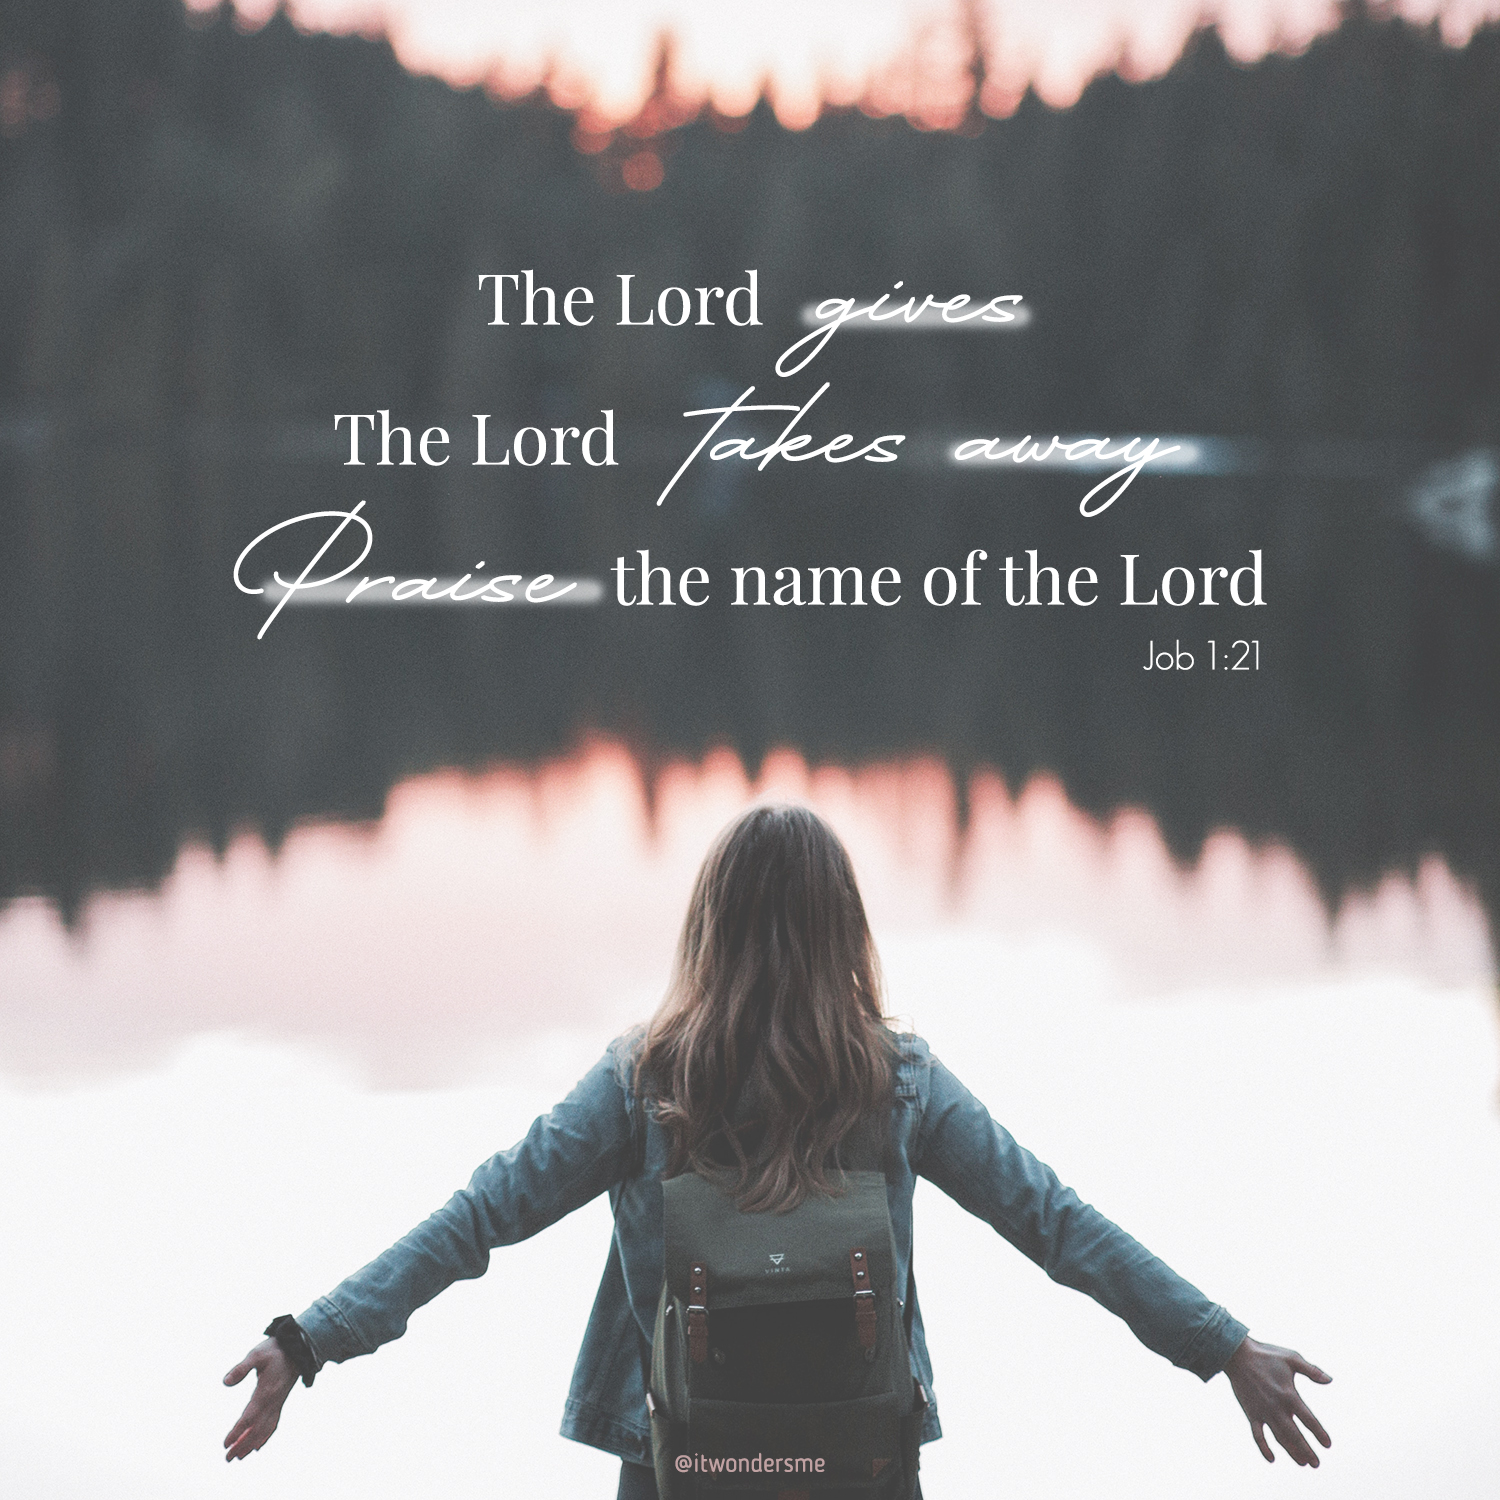 """The Lord gives, and the Lord takes away. Praise the name of the Lord!"" [Job 1:21 ERV]⁣"